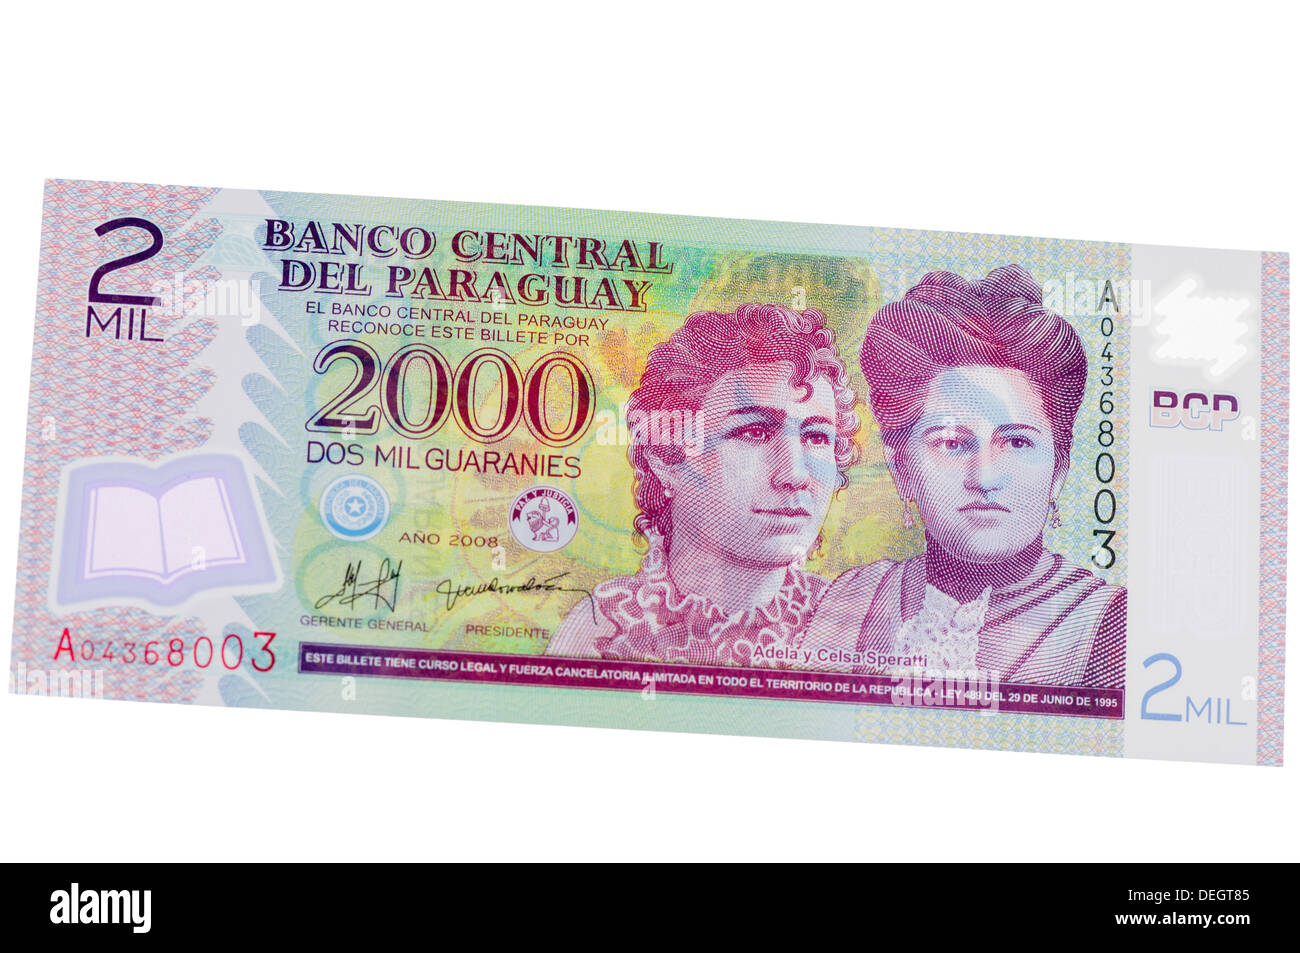 Banco Central Del Paraguay (Central bank of Paraguay) 2000 Guaranies polymer (plastic) bank note - Stock Image